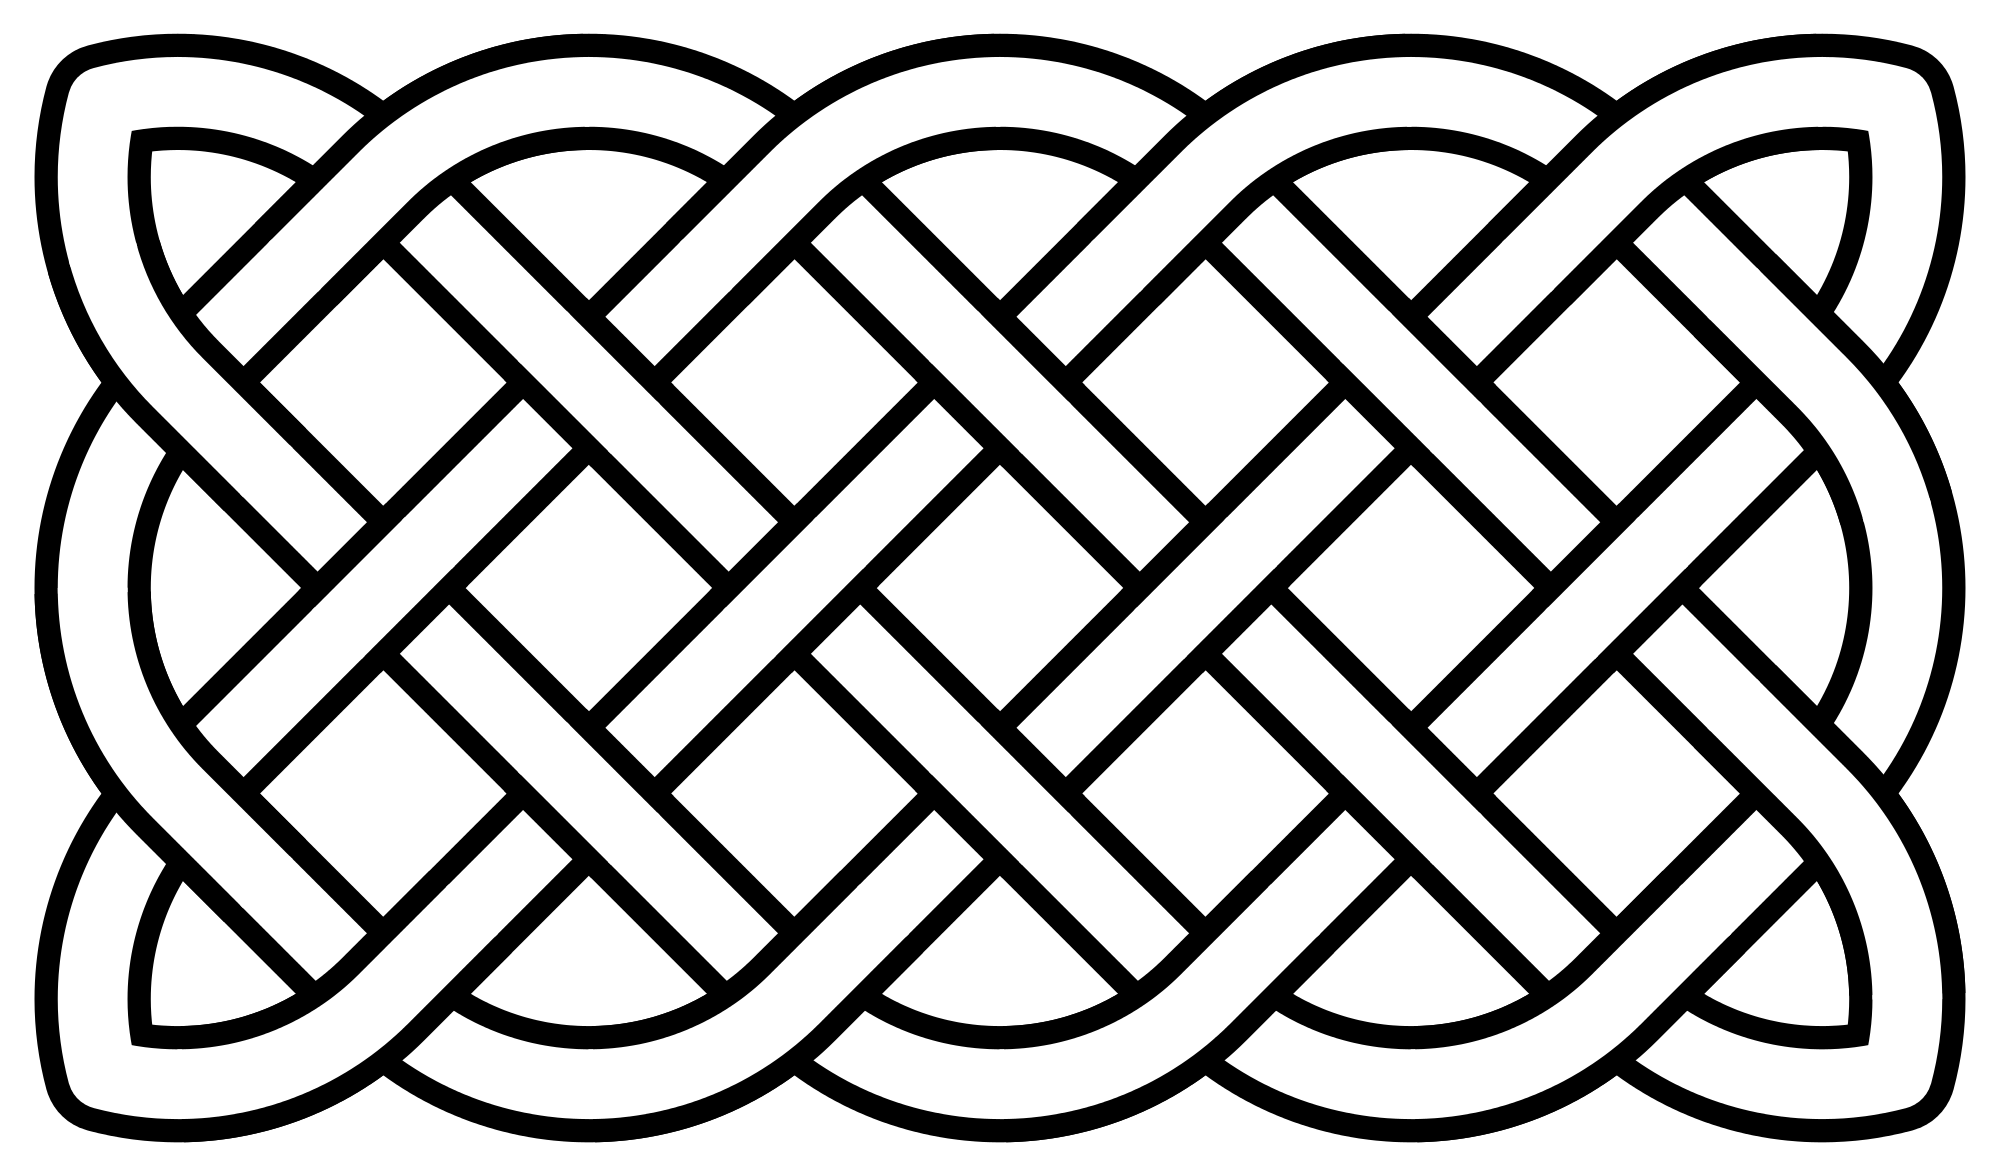 2000x1176 Collection Of Free Knot Vector Celtic Design. Download On Ubisafe